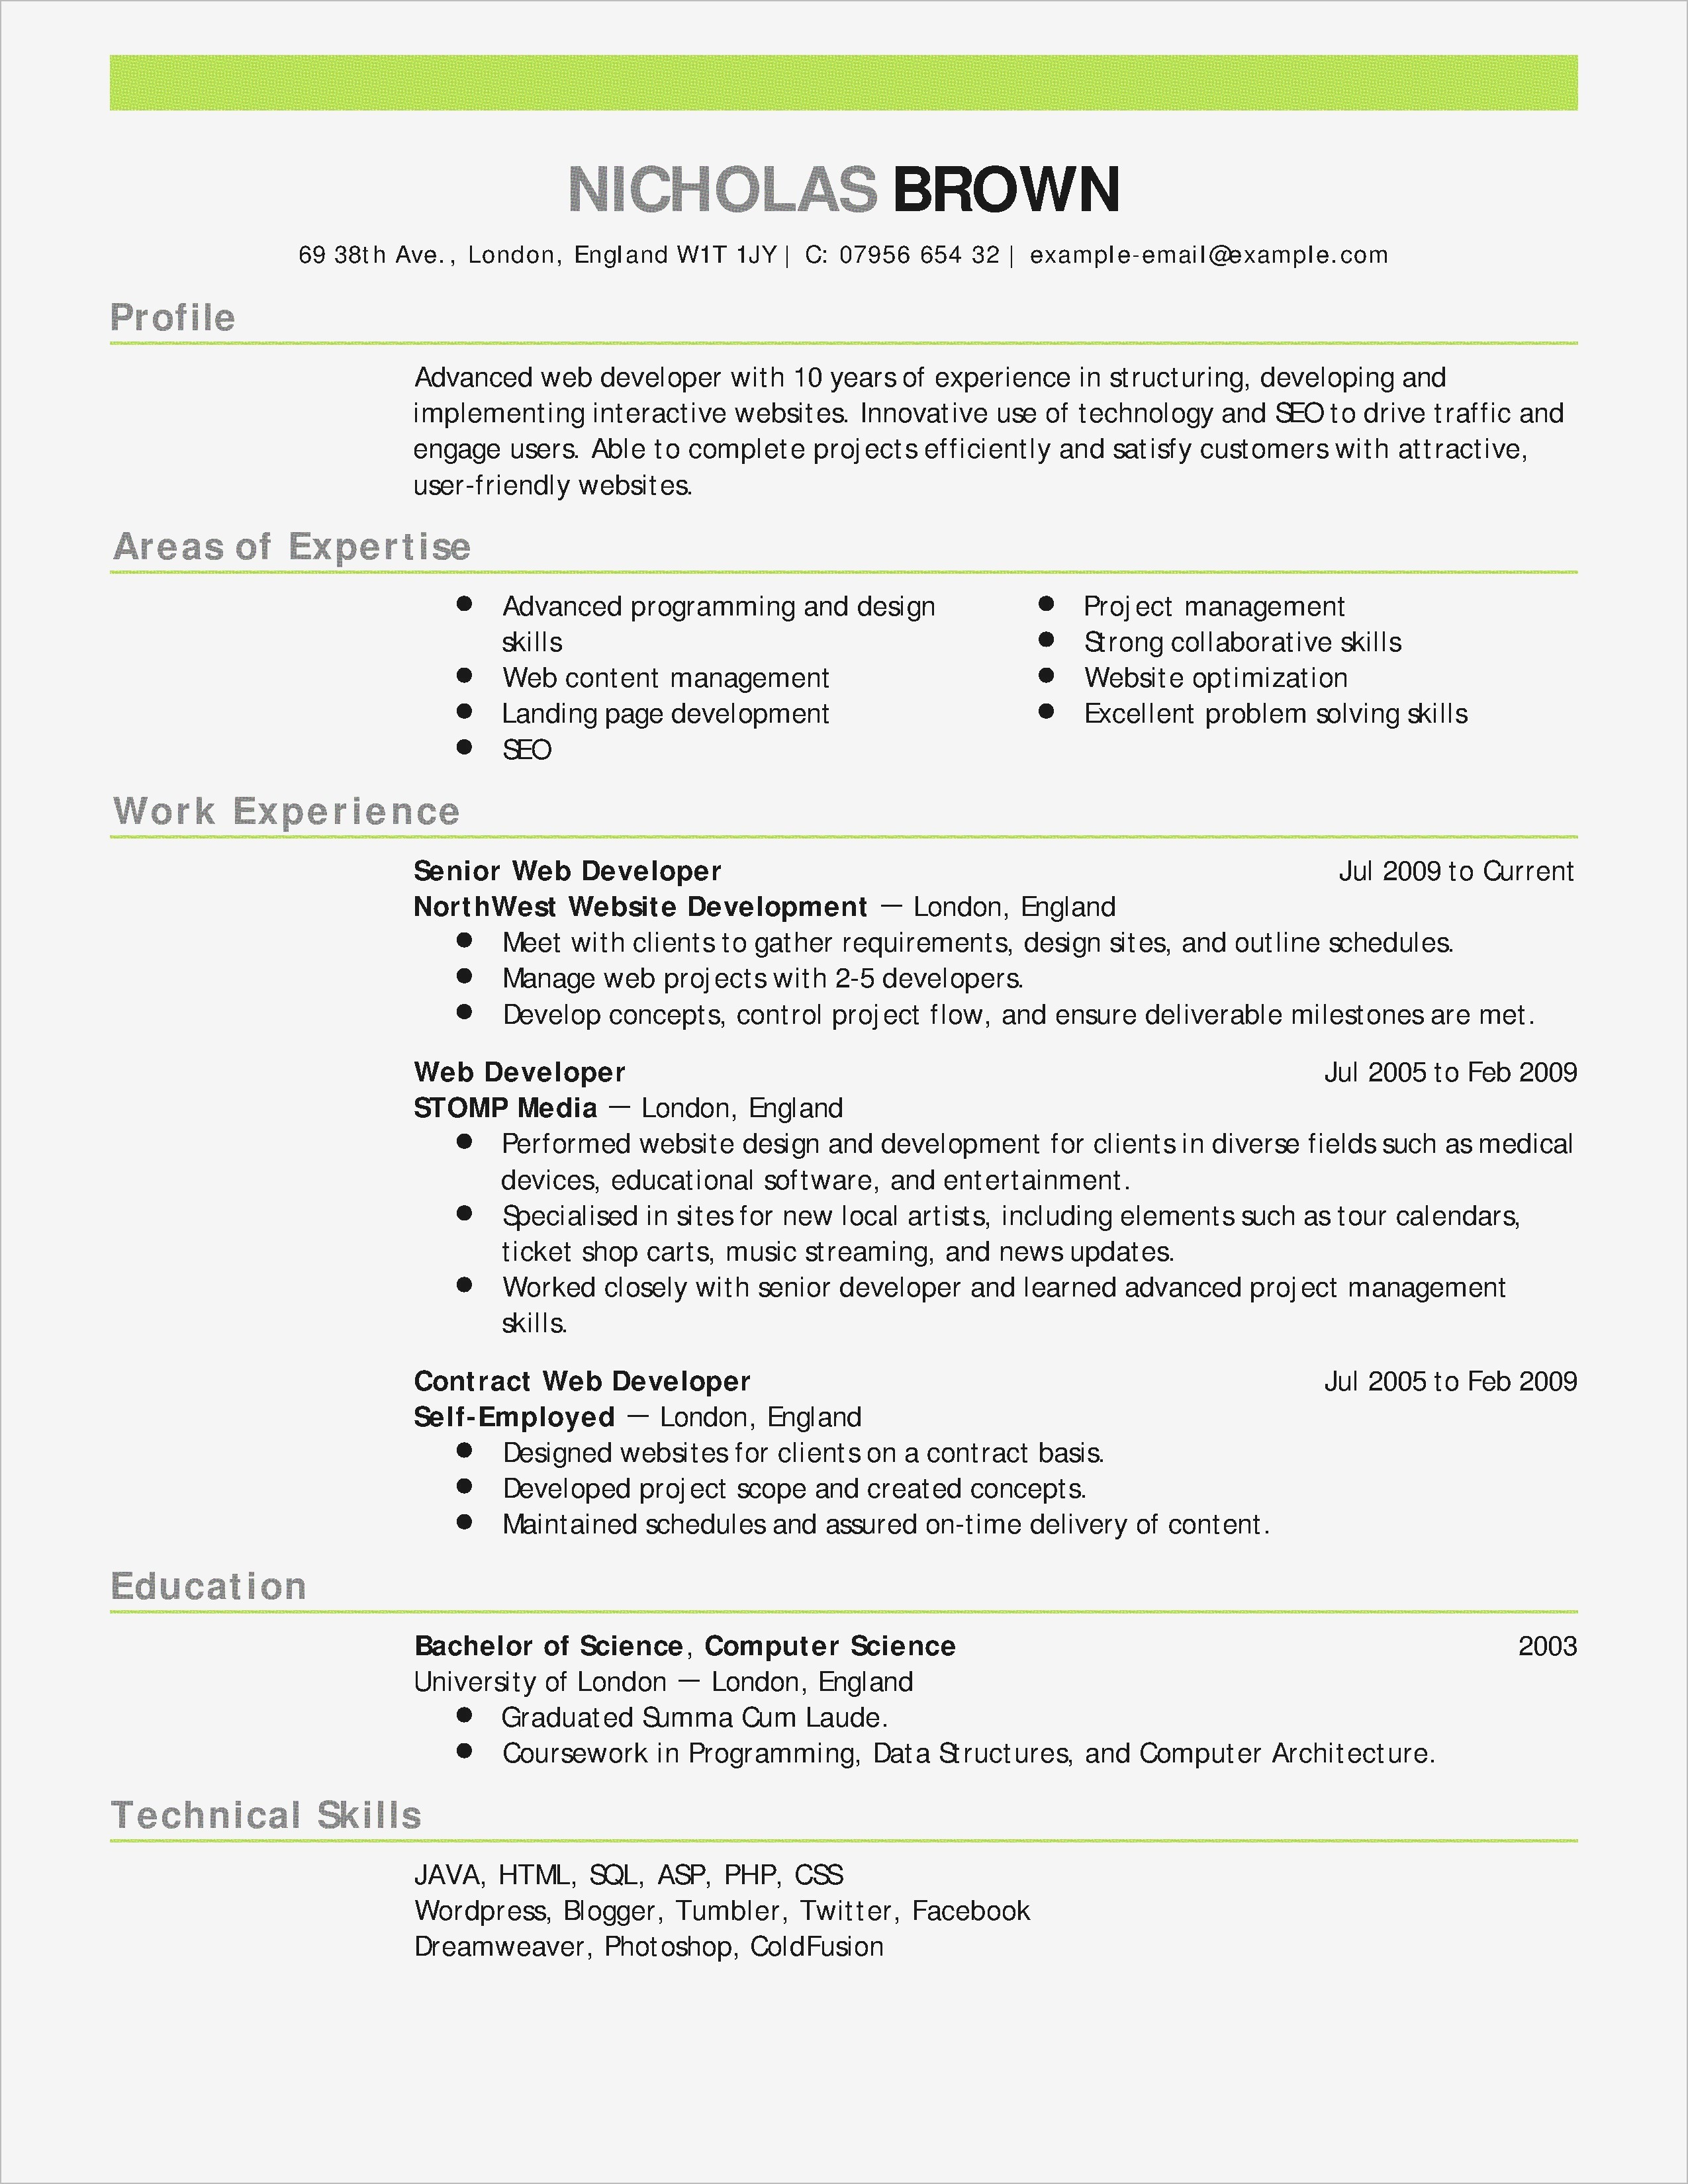 Resume Worksheet Template - Instant Resume Templates Elegant Resume 52 New Cv Templates Full Hd